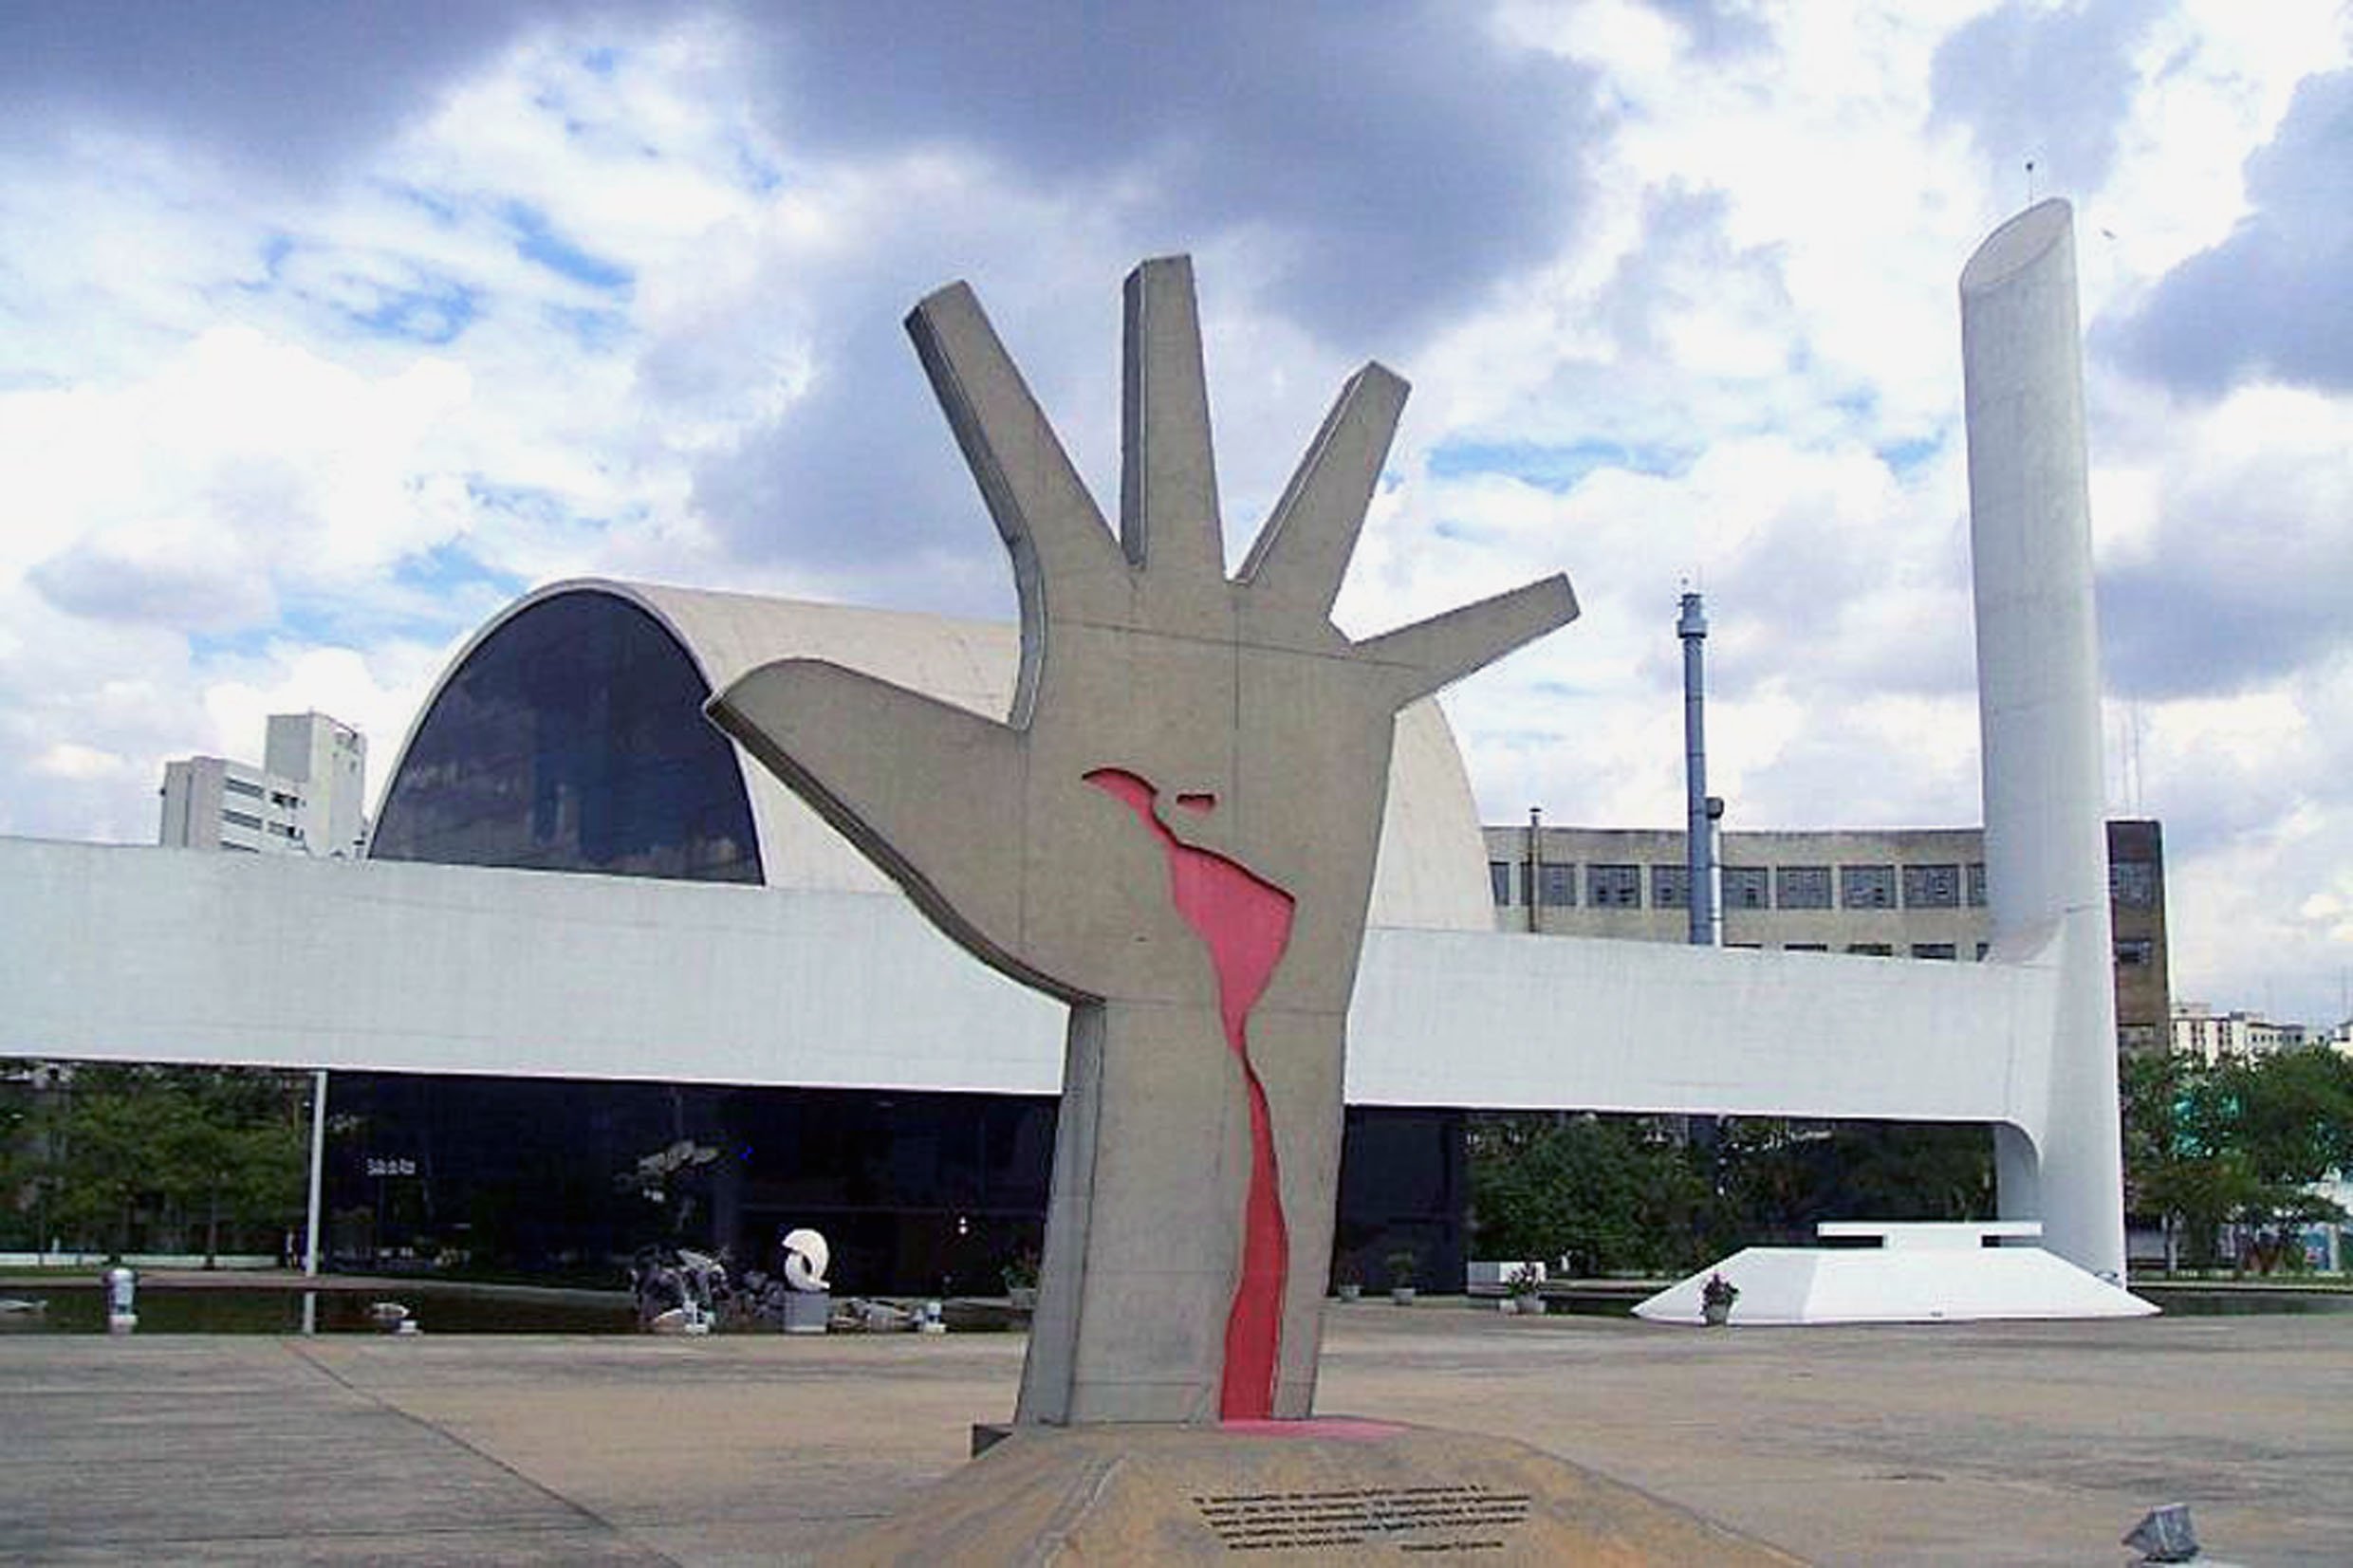 Memorial da América Latina (fonte: Wikipedia)<a style='float:right' href='https://www3.al.sp.gov.br/repositorio/noticia/N-02-2019/fg229964.jpg' target=_blank><img src='/_img/material-file-download-white.png' width='14px' alt='Clique para baixar a imagem'></a>